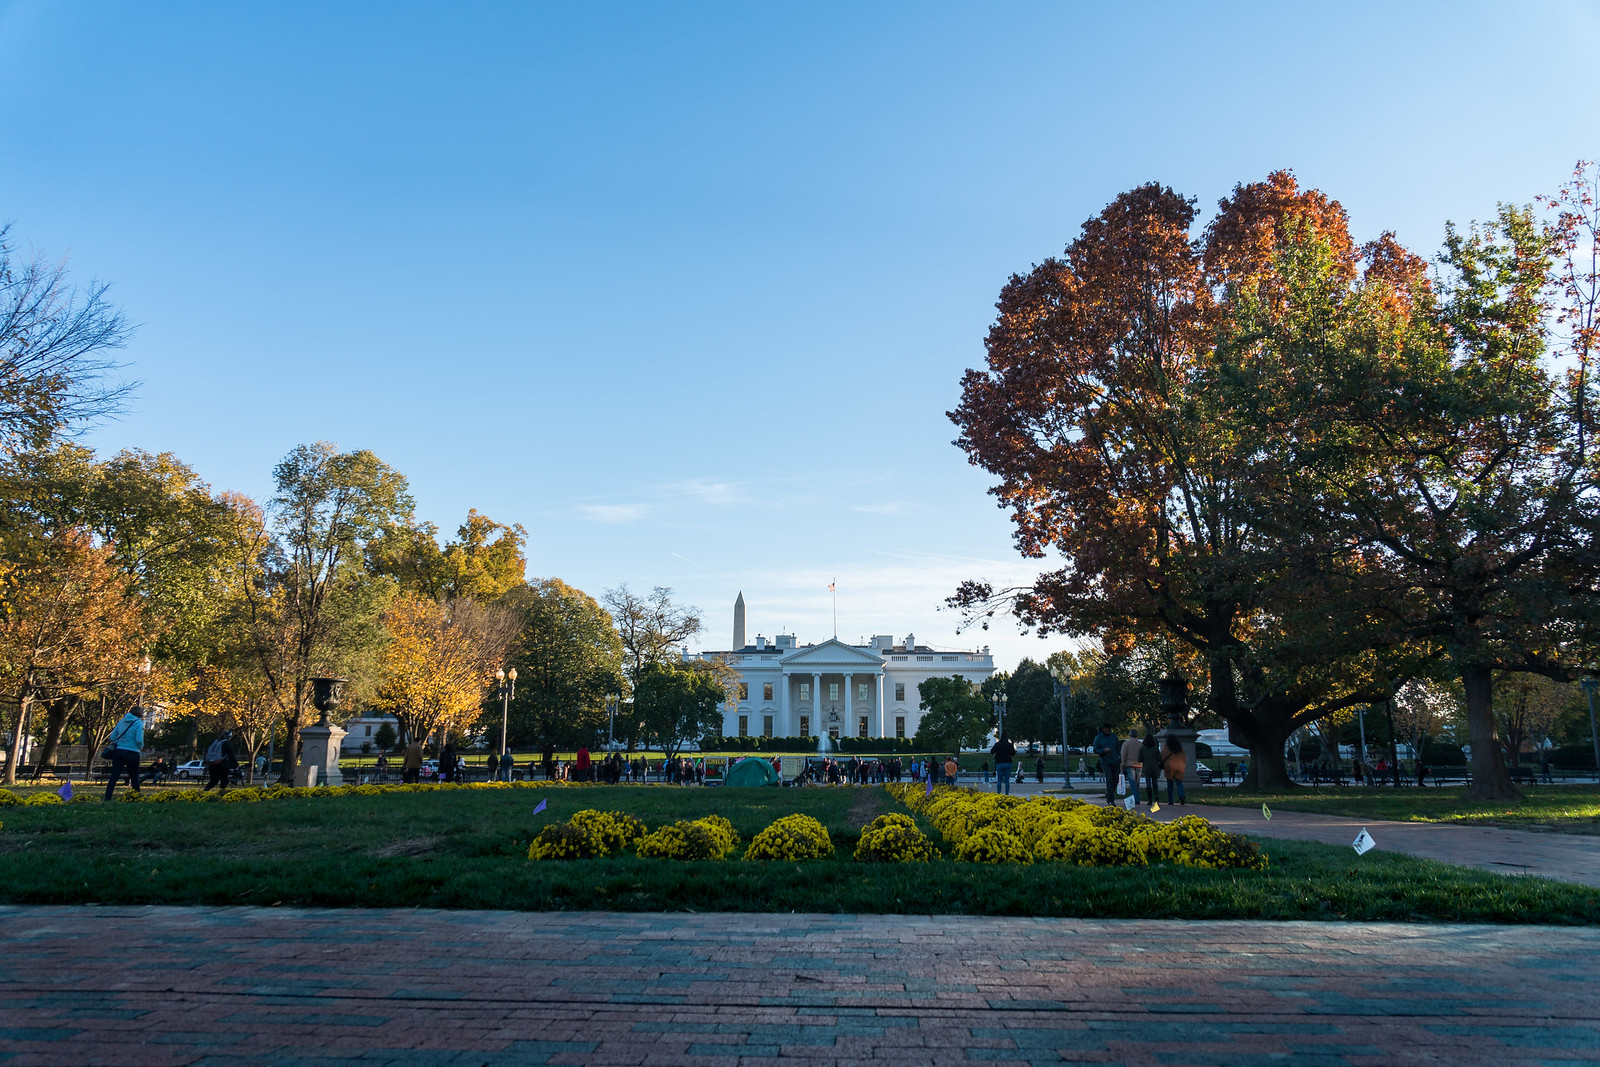 20171110_WashingtonDC_8